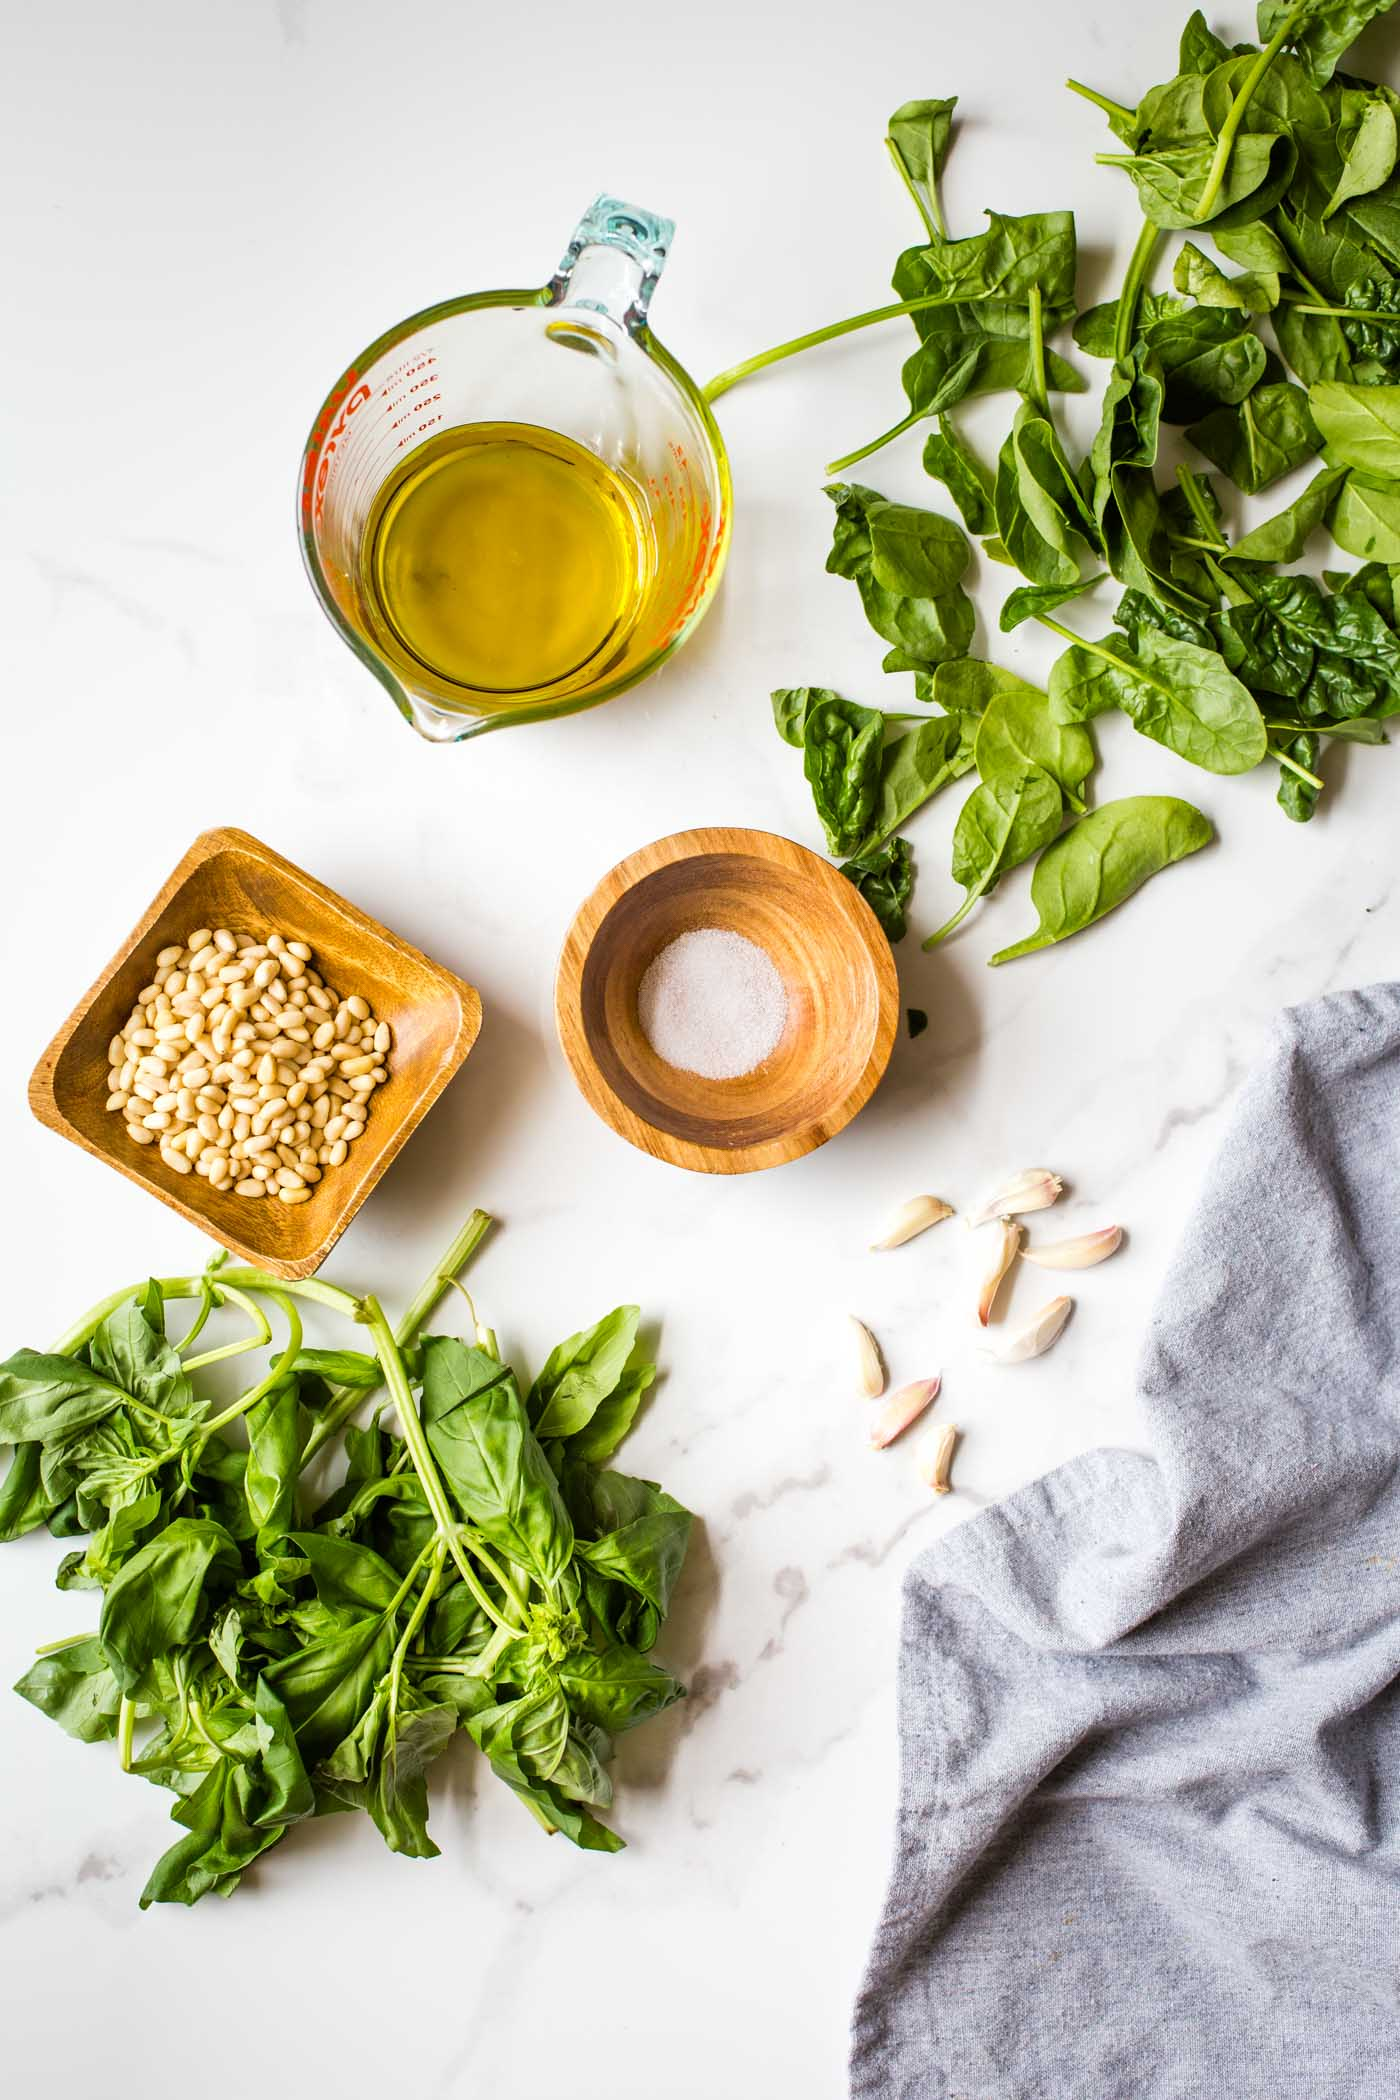 Spinach, basil, olive oil, pine nuts and garlic on white background